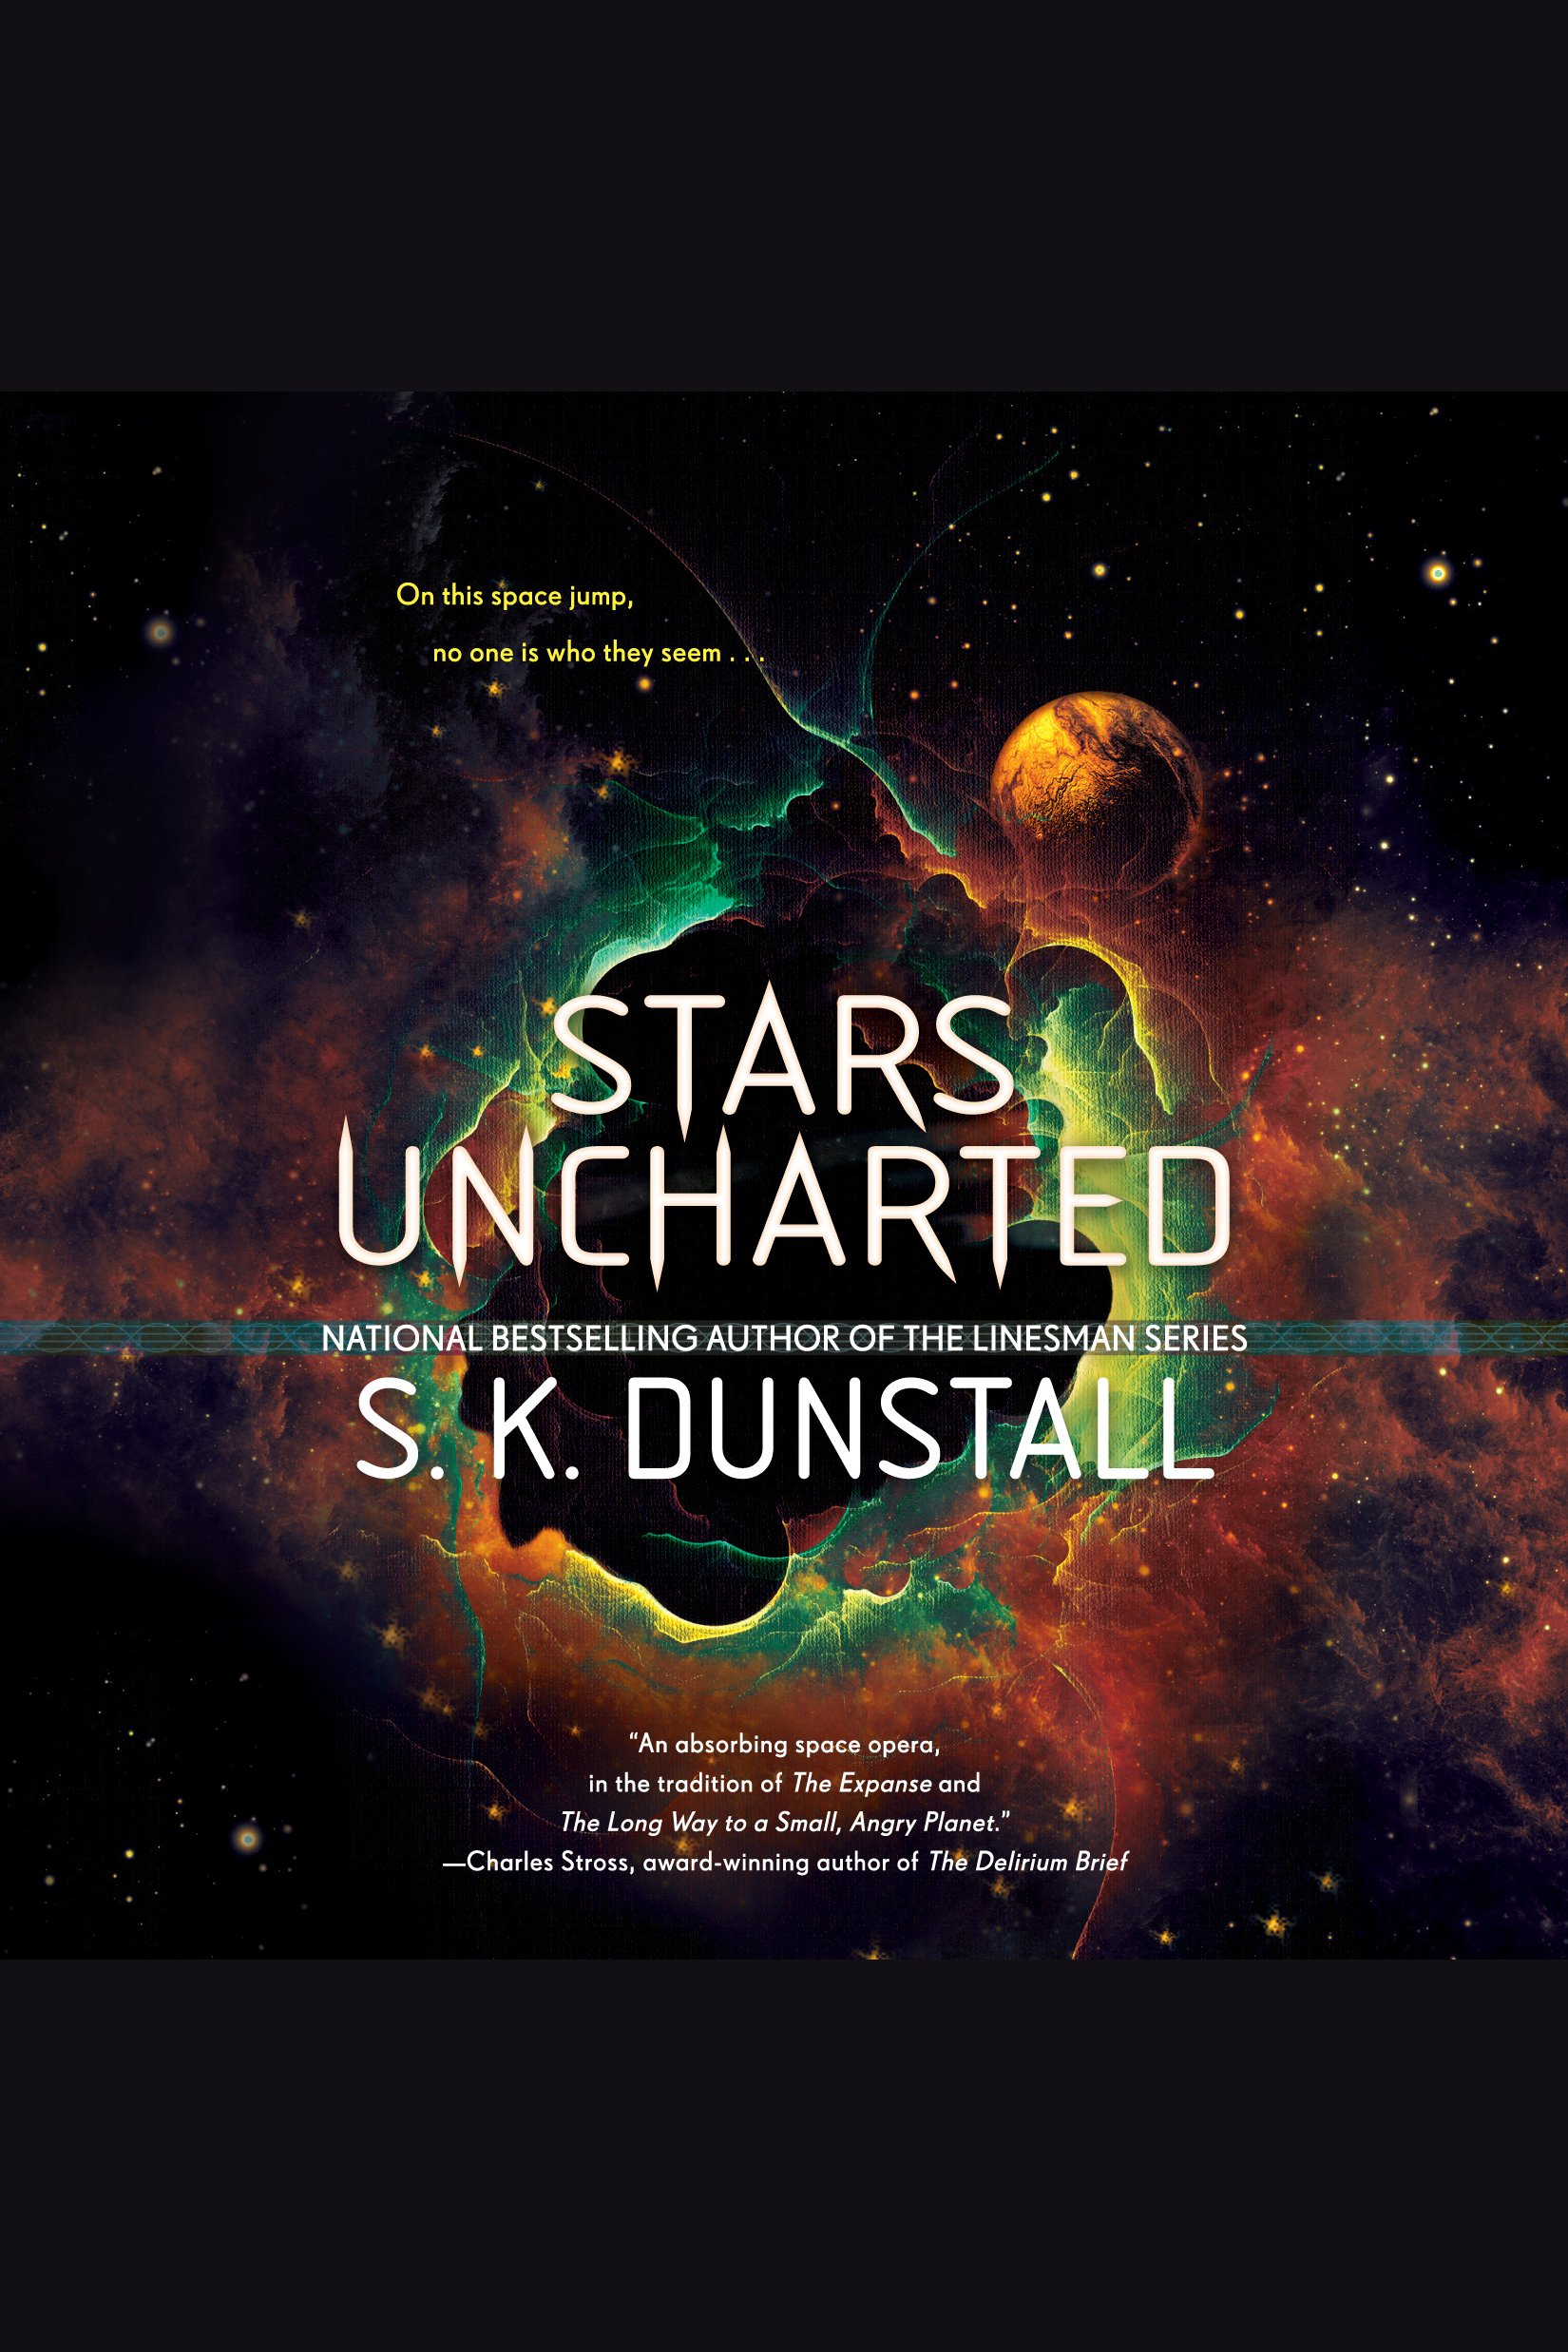 Stars Uncharted [electronic resource]